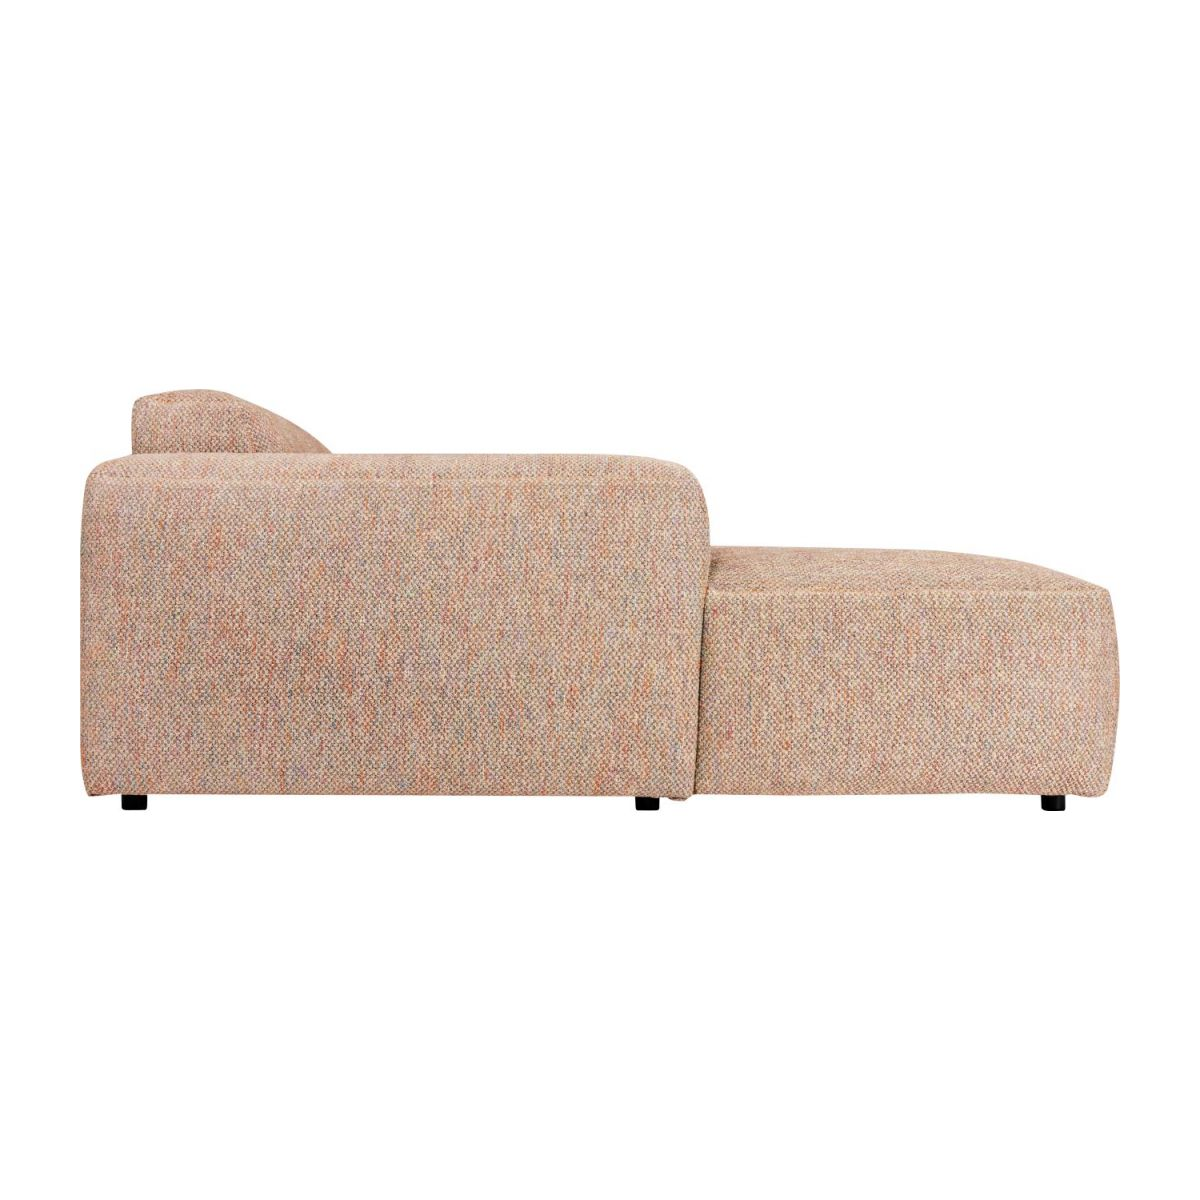 3 seater sofa with left chaise longue in Bellagio fabric, passion orange n°6